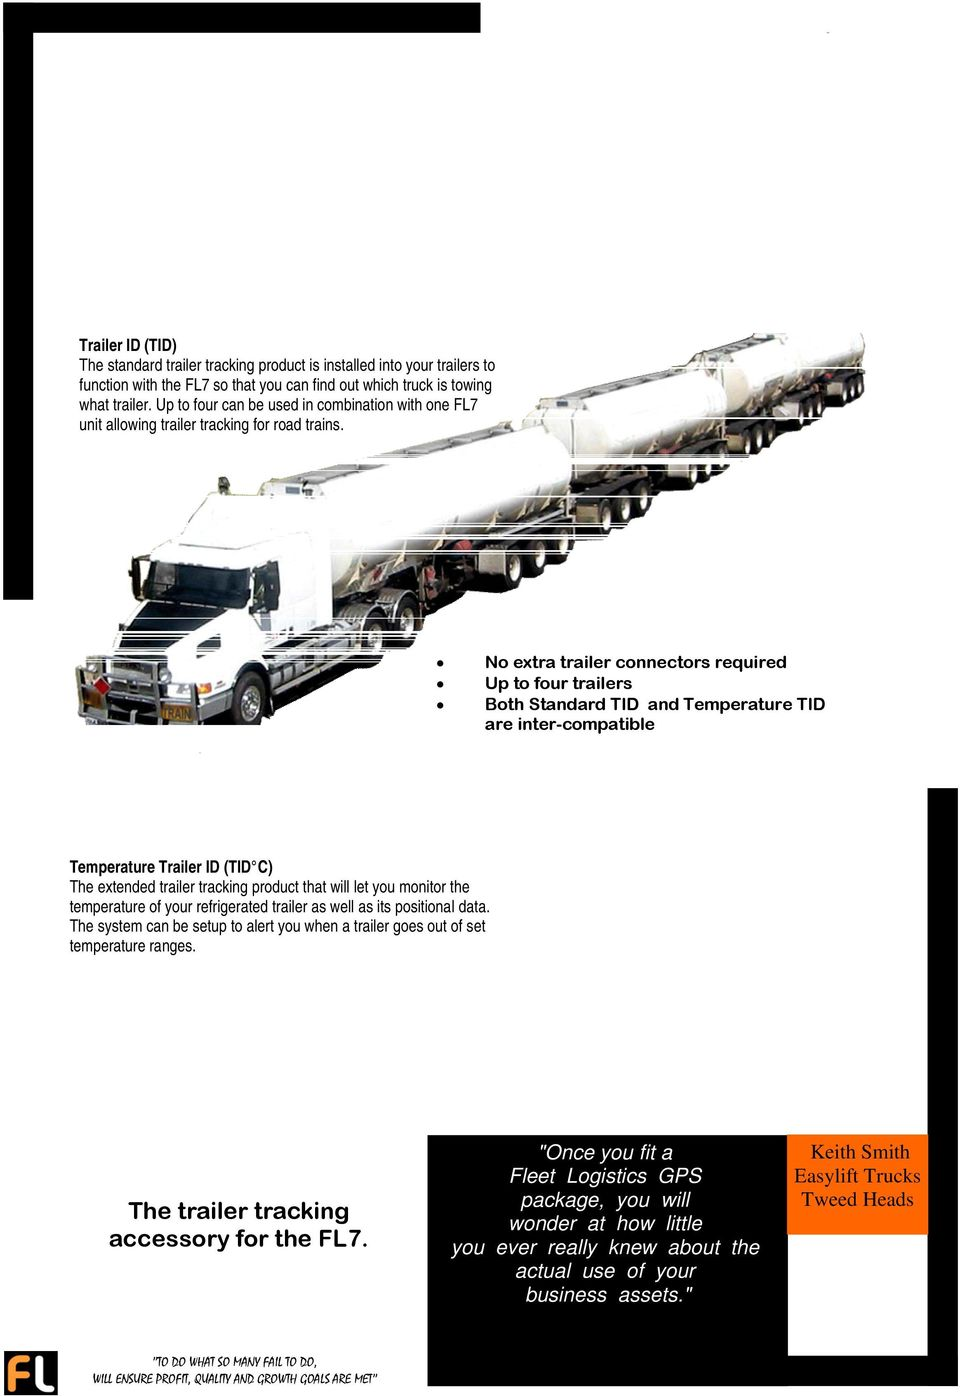 No extra trailer connectors required Up to four trailers Both Standard TID and Temperature TID are inter-compatible Temperature Trailer ID (TID C) The extended trailer tracking product that will let